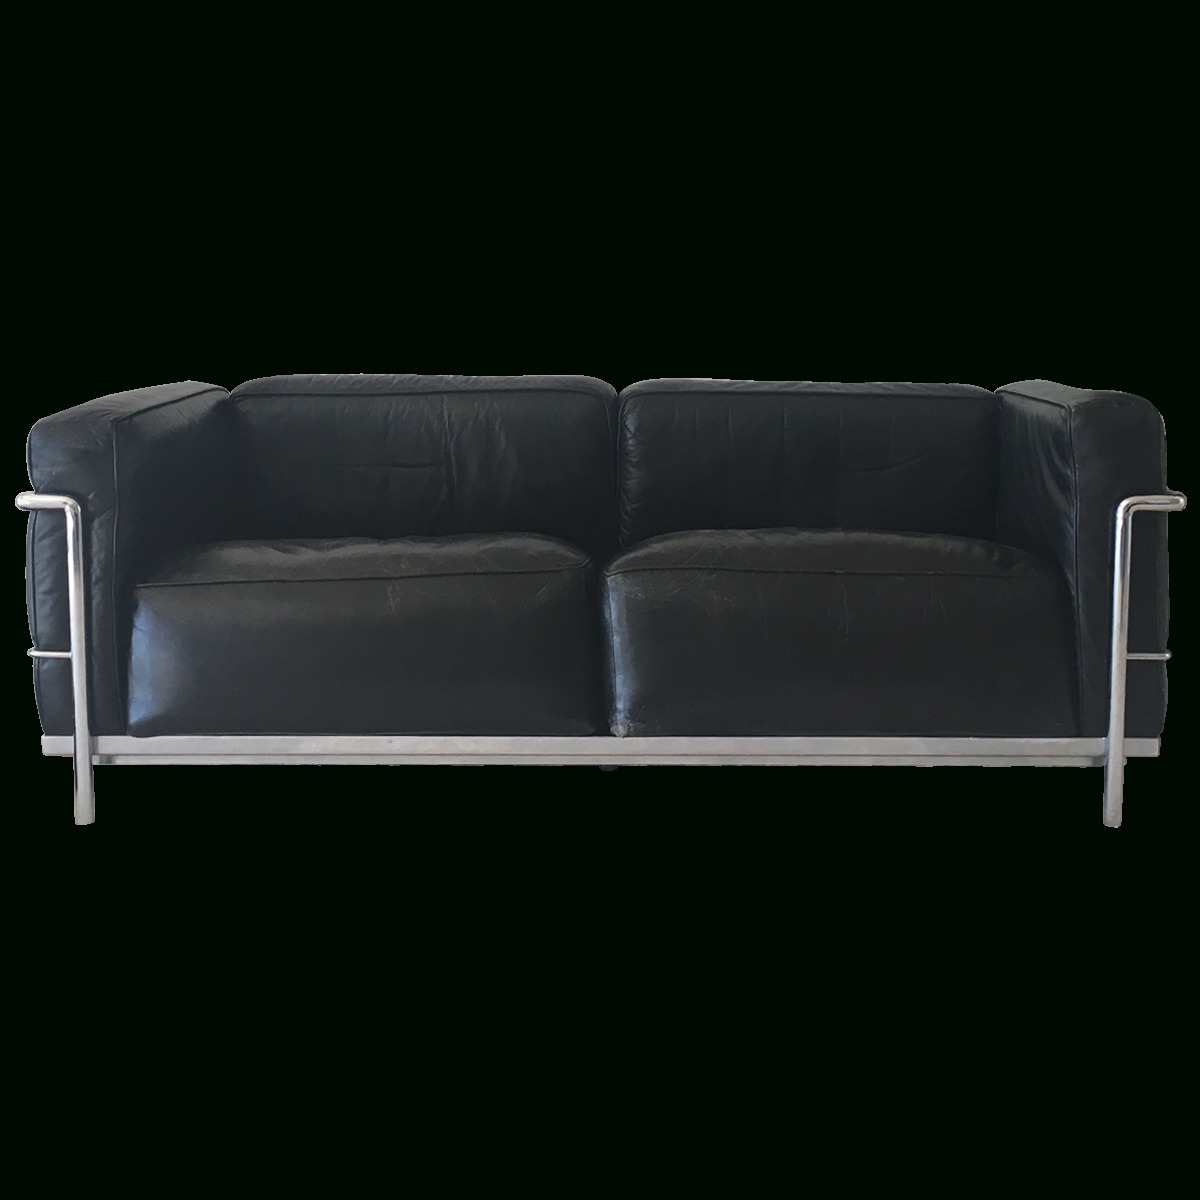 Seating | Designer Sofas, Sectional Sofas, Leather Sofas, And throughout Angled Sofa Sectional (Image 21 of 30)